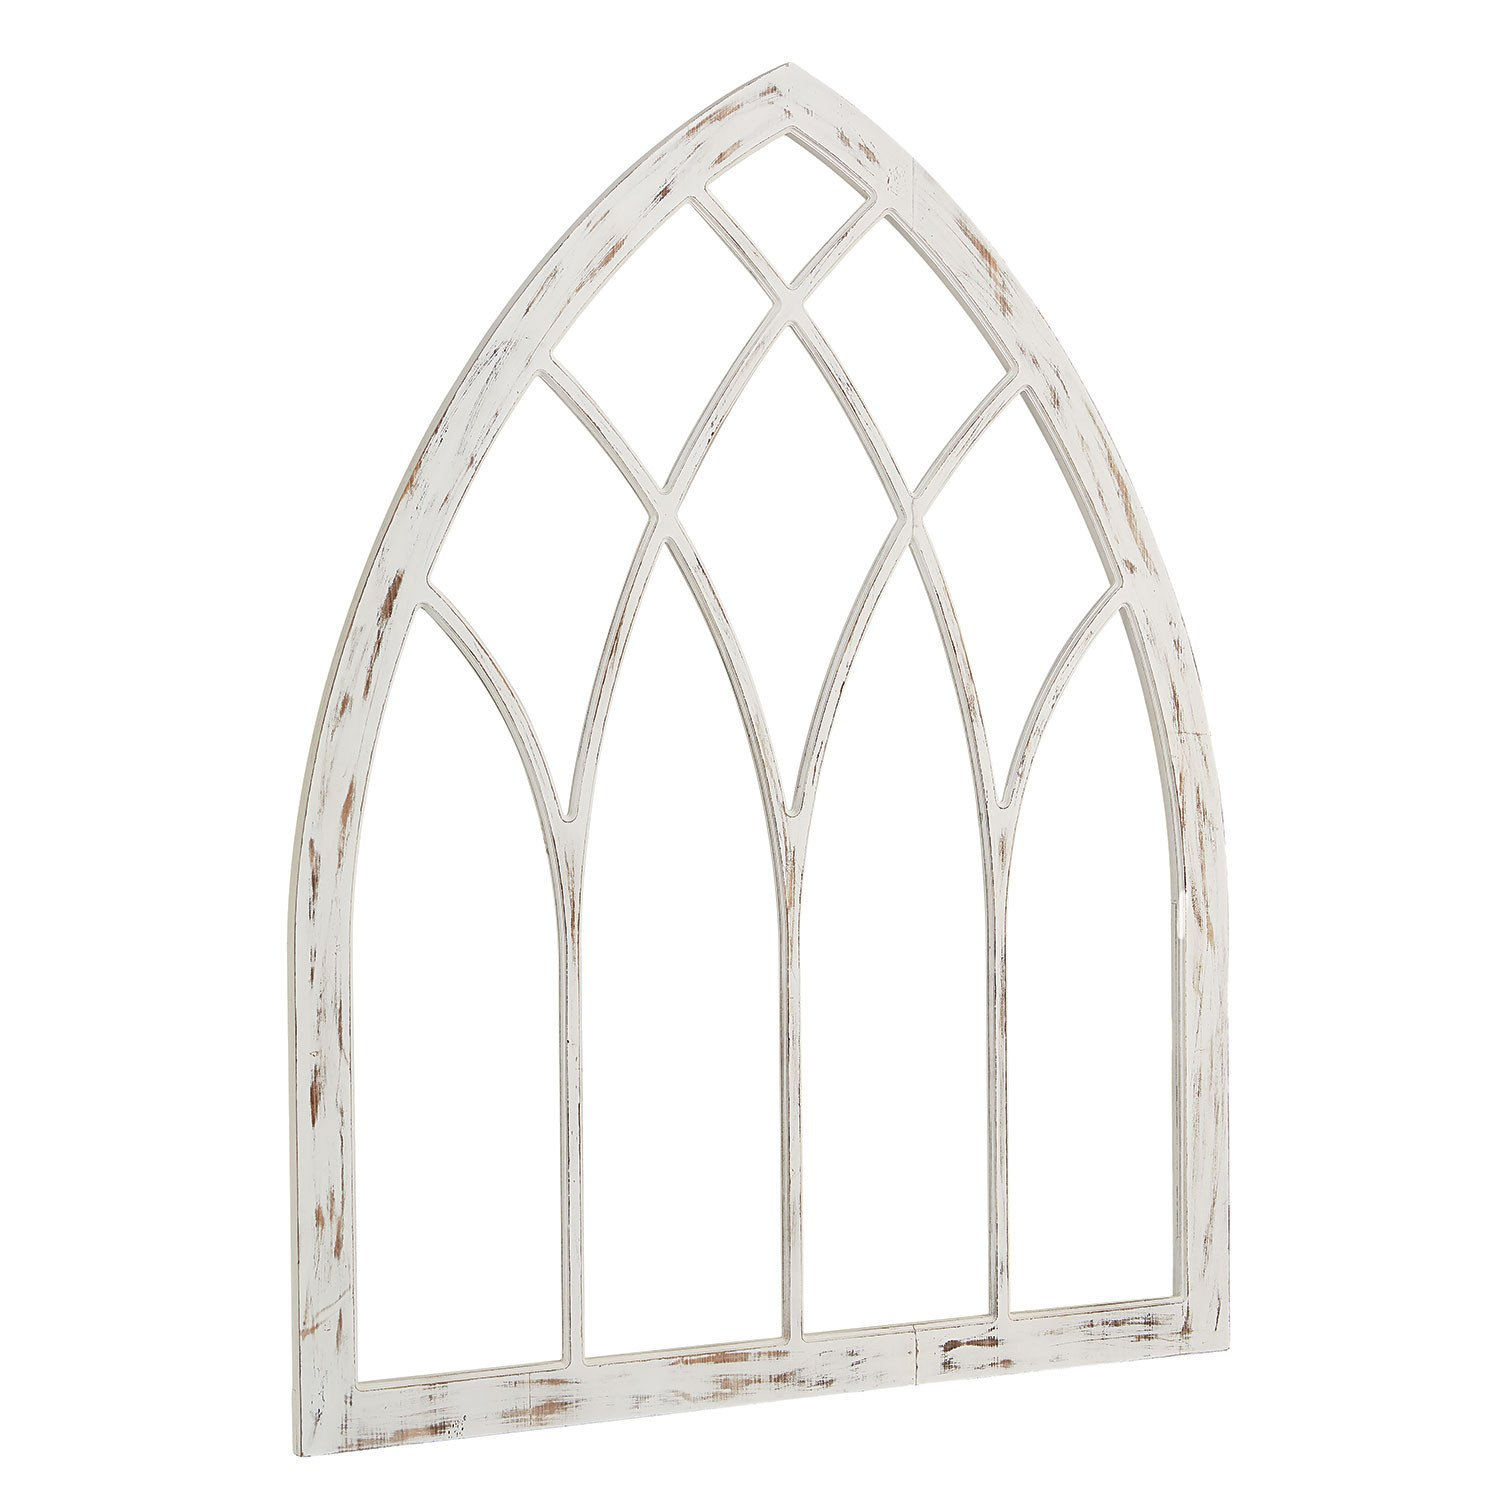 Lancet Window Panel Magnolia Home Architectural Decor Window Wall Decor Arched Wall Decor